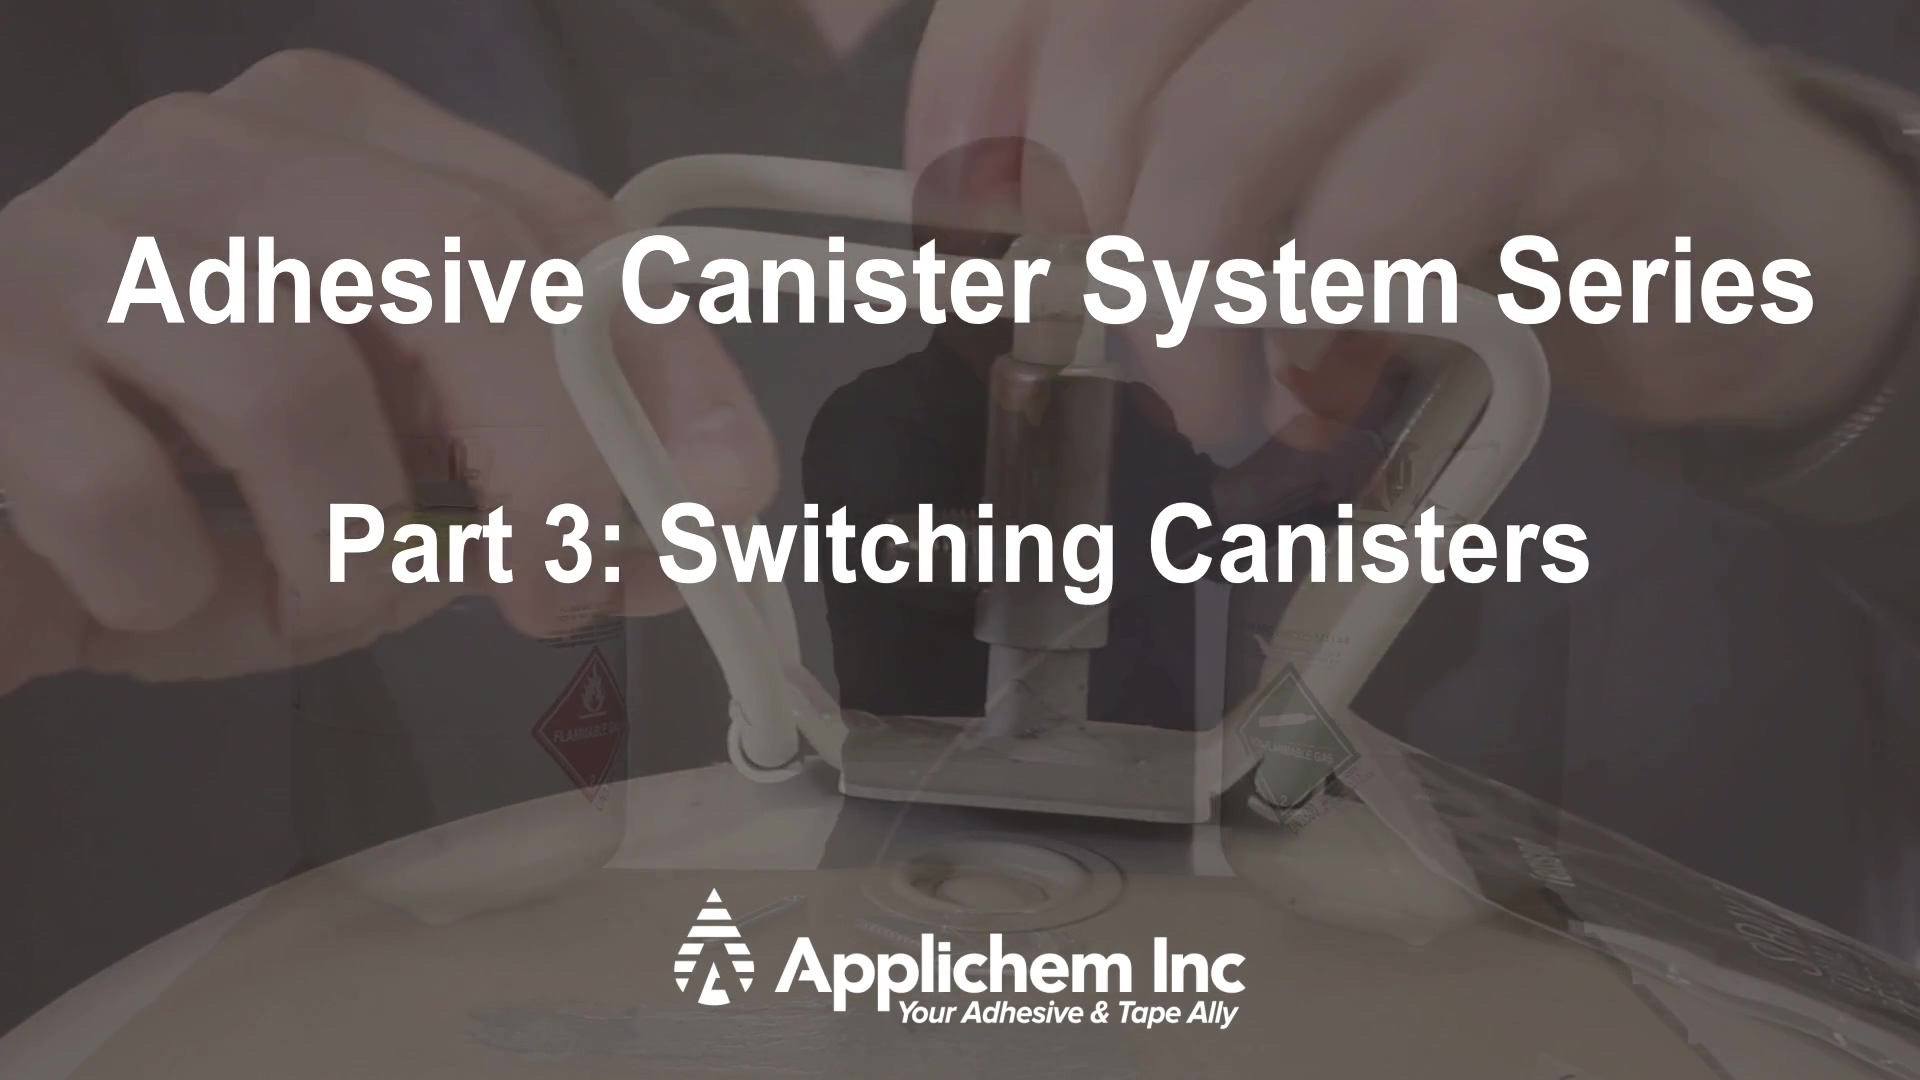 3 - Switching Canisters